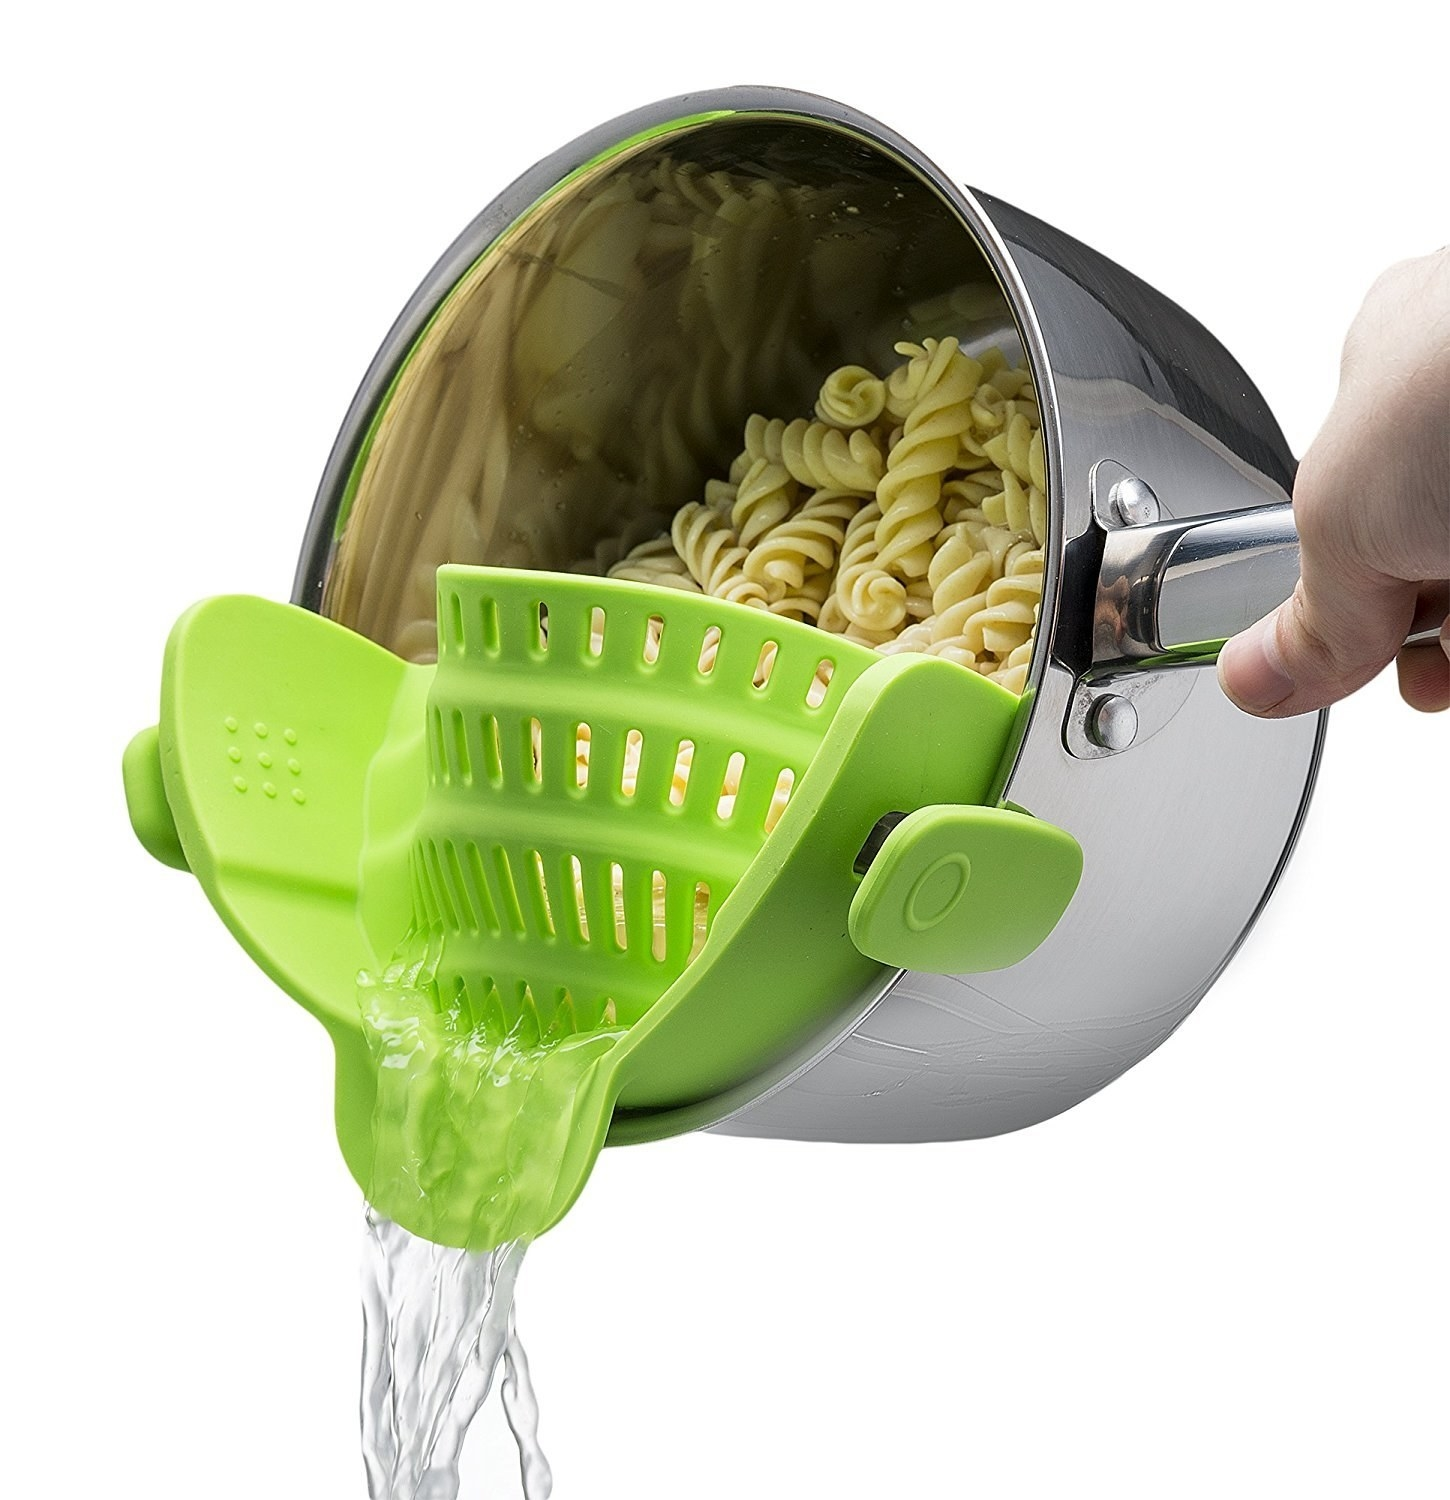 A silicone pot drainer attached over a pot of pasta